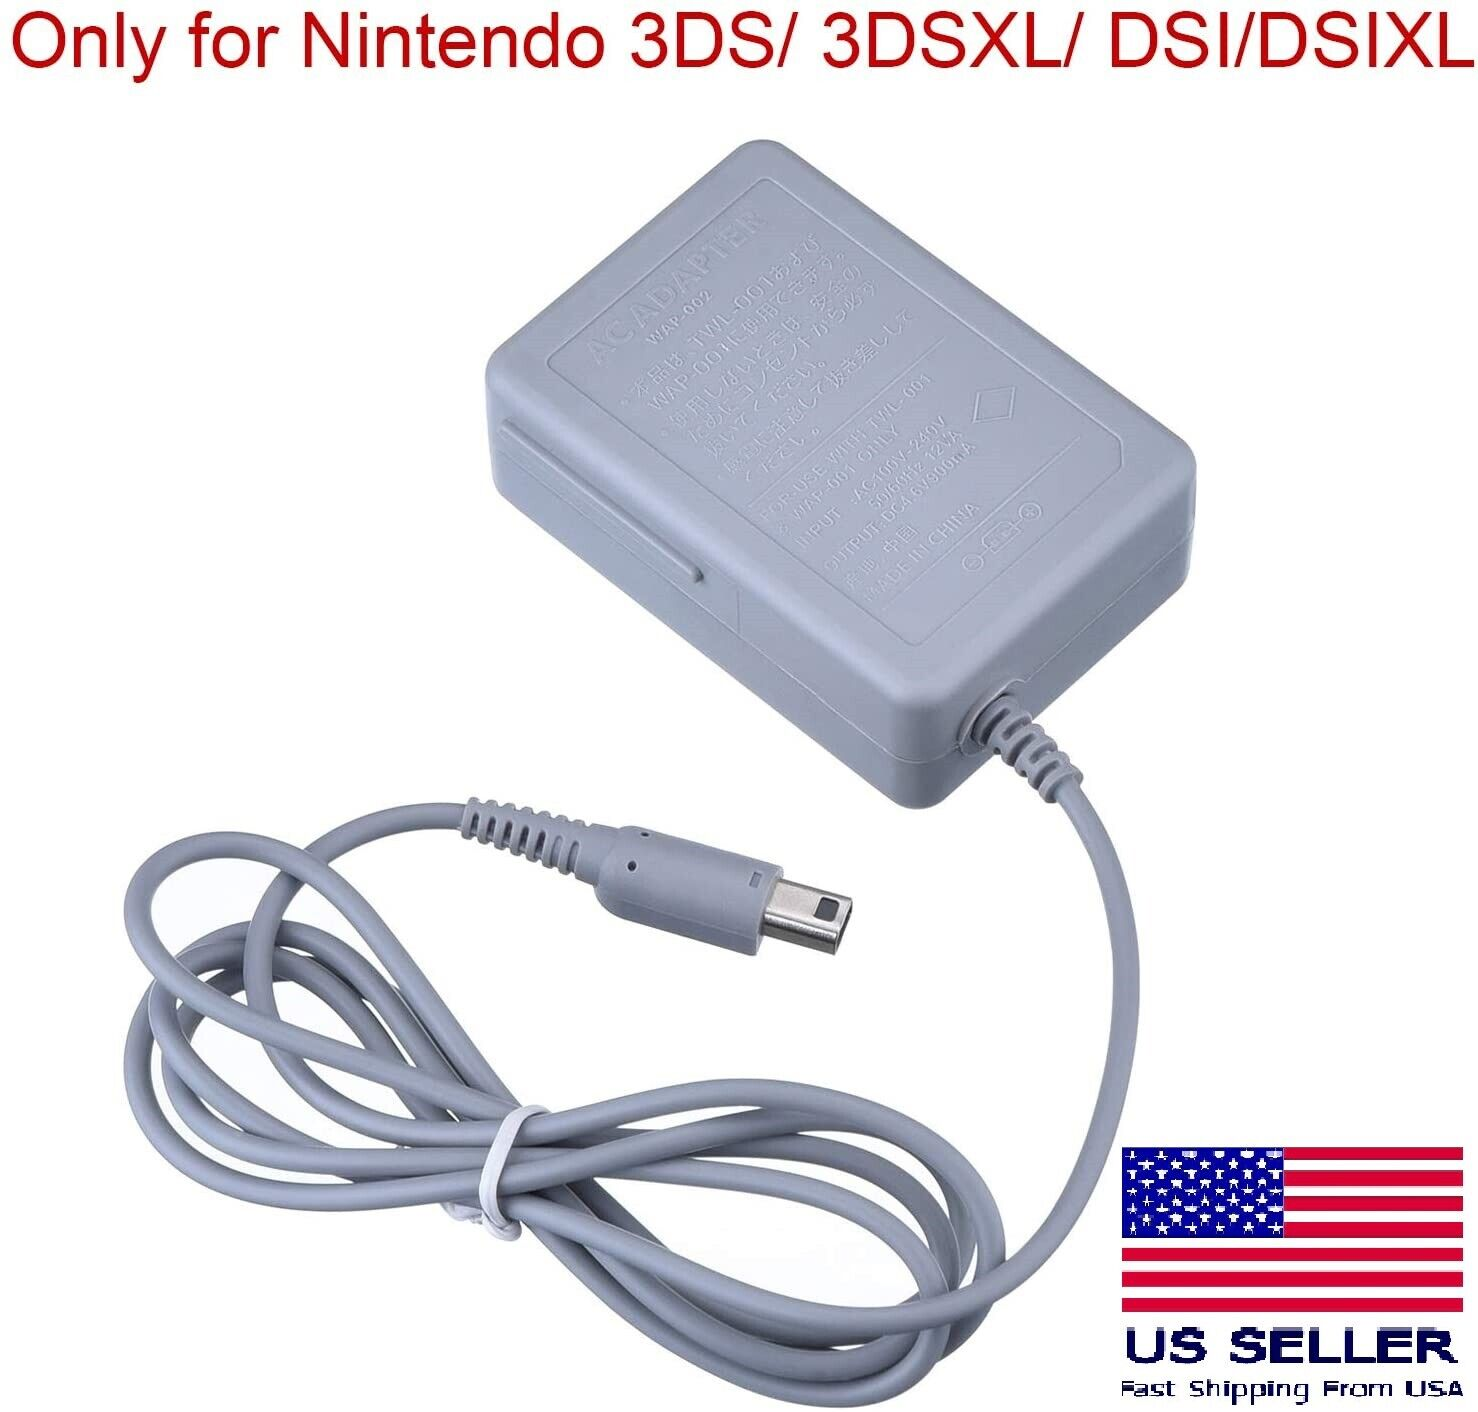 Replacement Home Charger AC Power Adapter for Nintendo 3DS/ 3DSXL/ DSI/ DSIXL Cables & Adapters